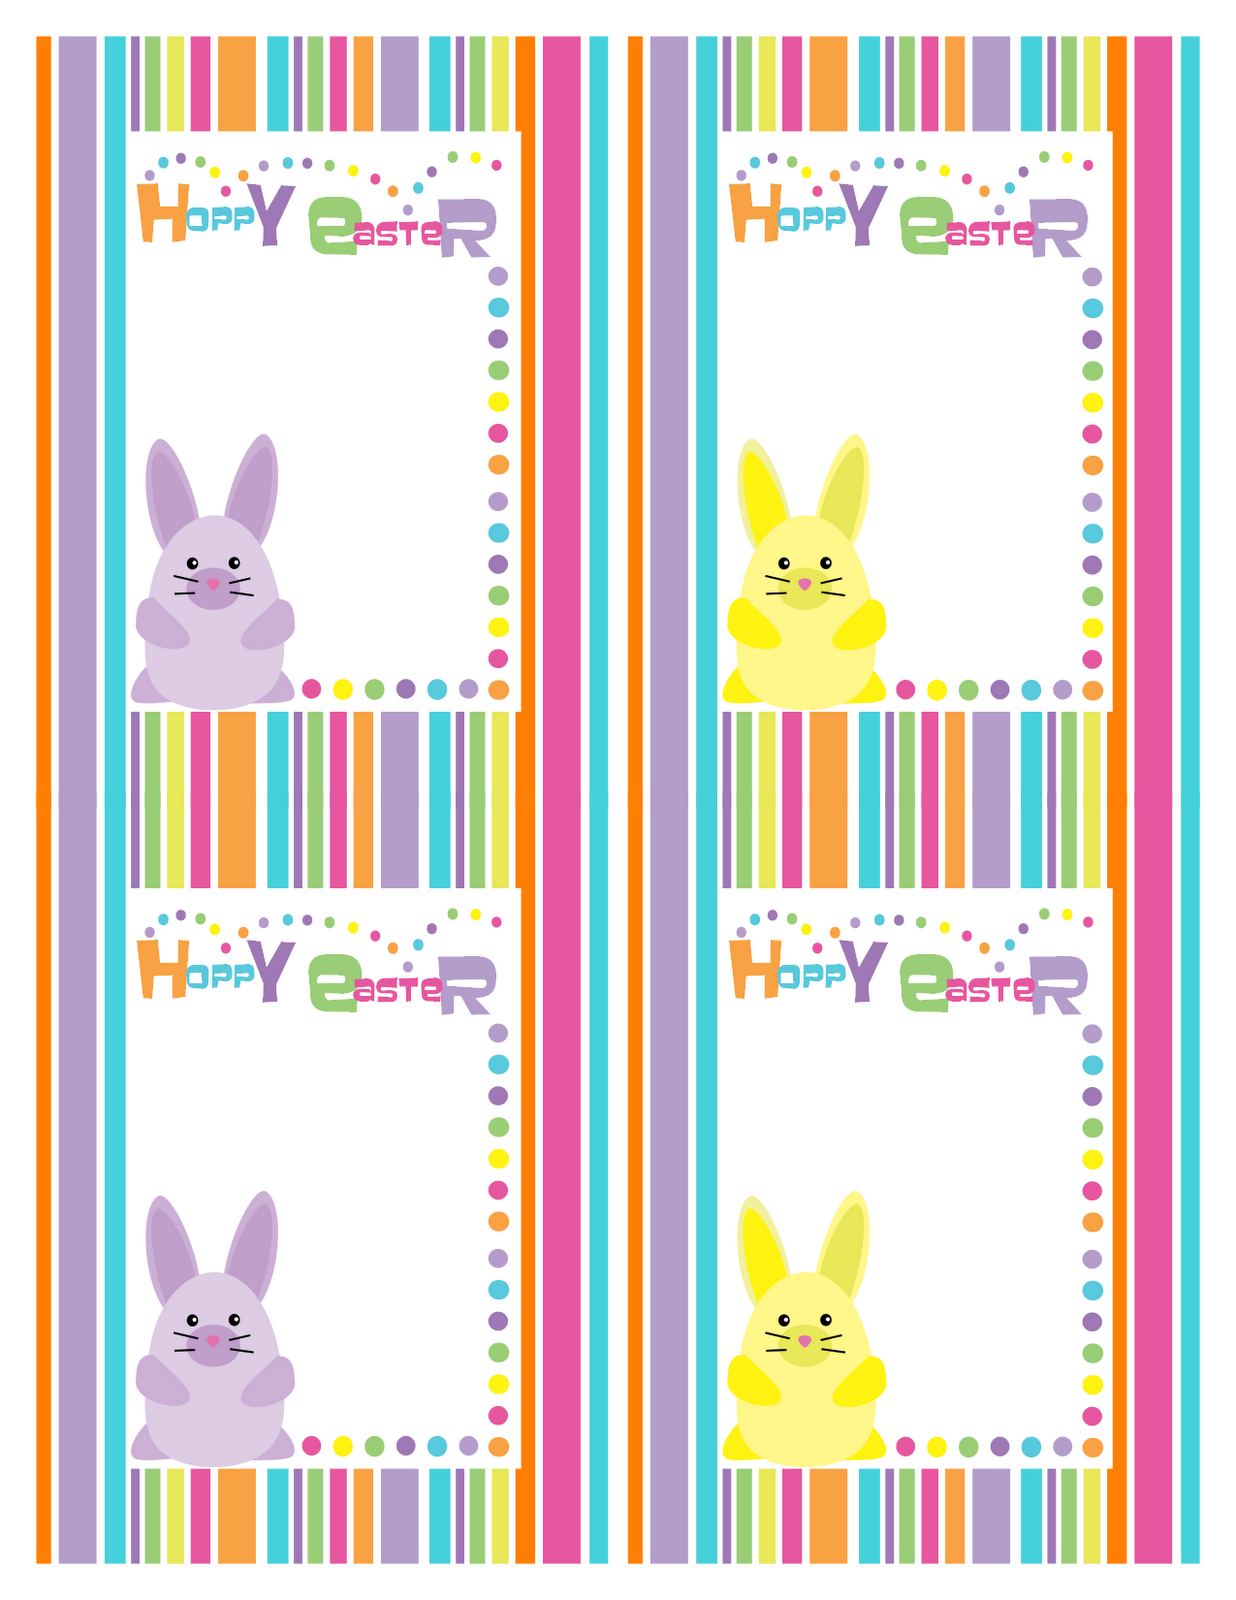 graphic regarding Easter Cards Printable identified as Easter Reward Playing cards Printable Merry Xmas And Pleased Refreshing